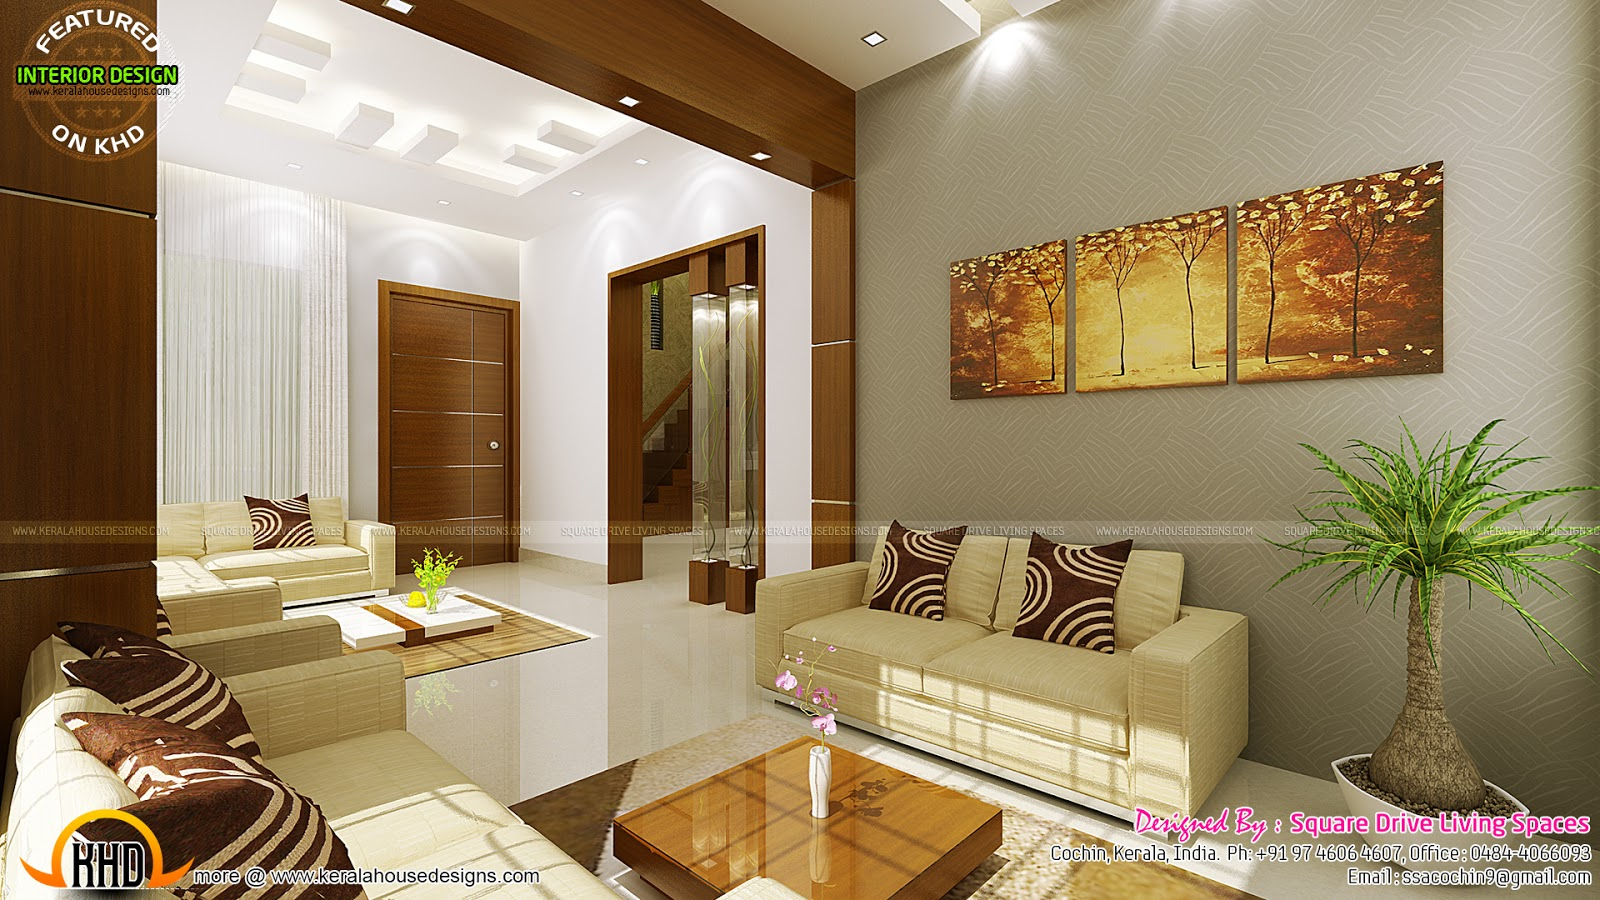 Contemporary kitchen dining and living room kerala home for House interior design nagercoil